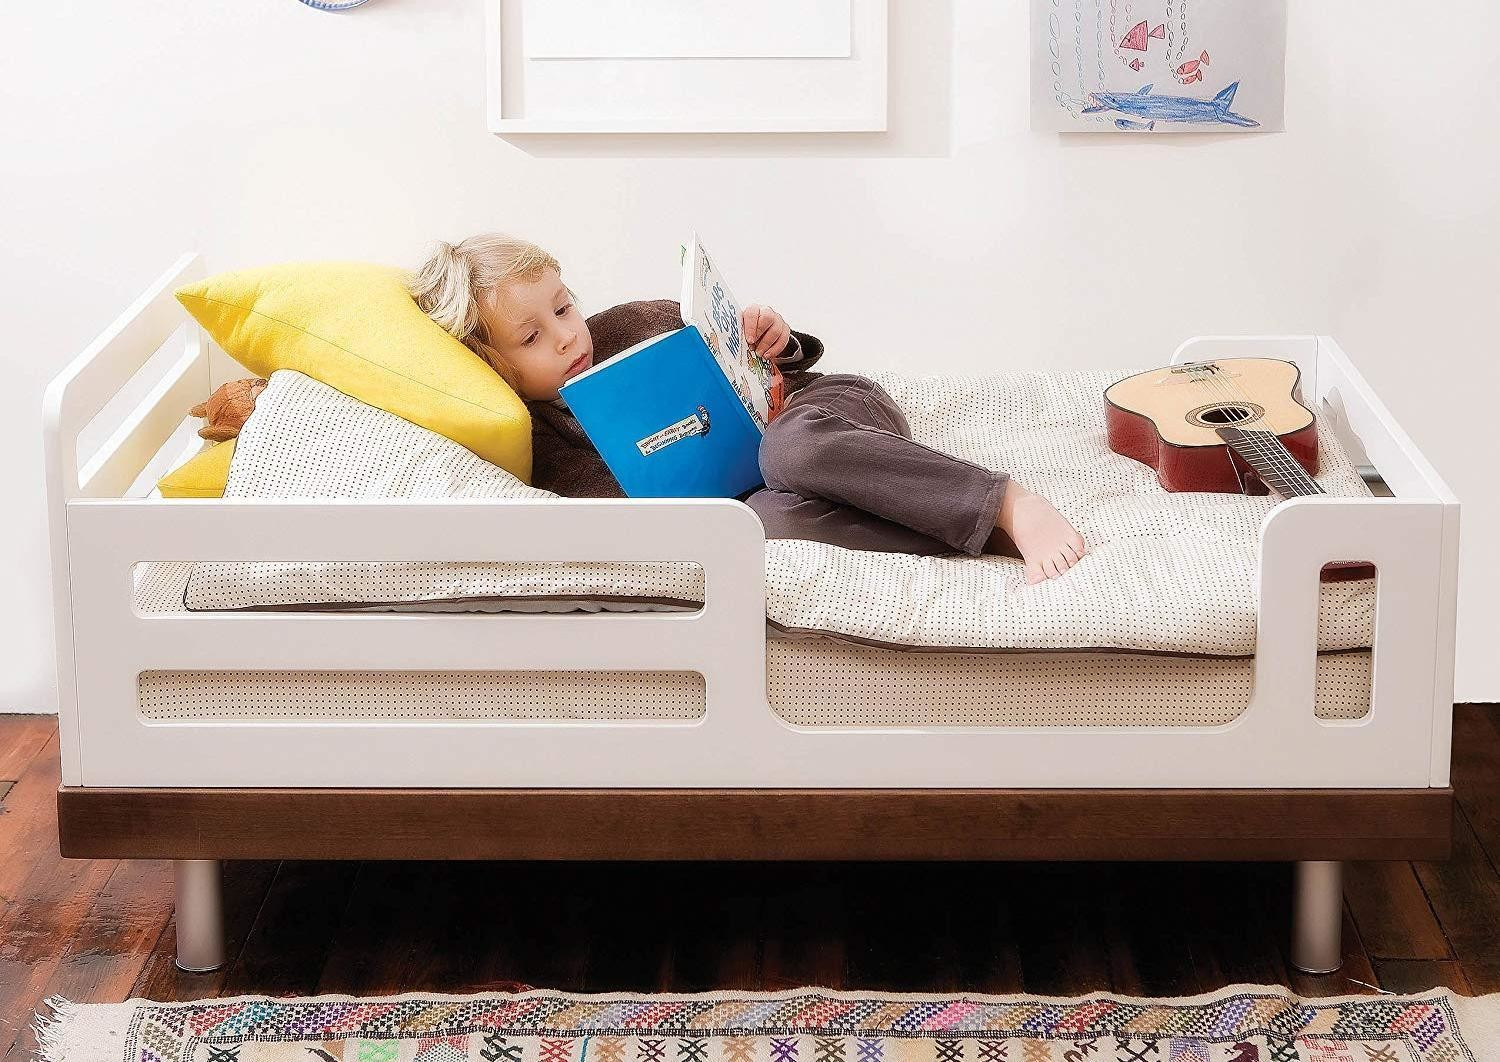 The Best Toddler Beds For Kids For 2019 - See It Now - Lonny